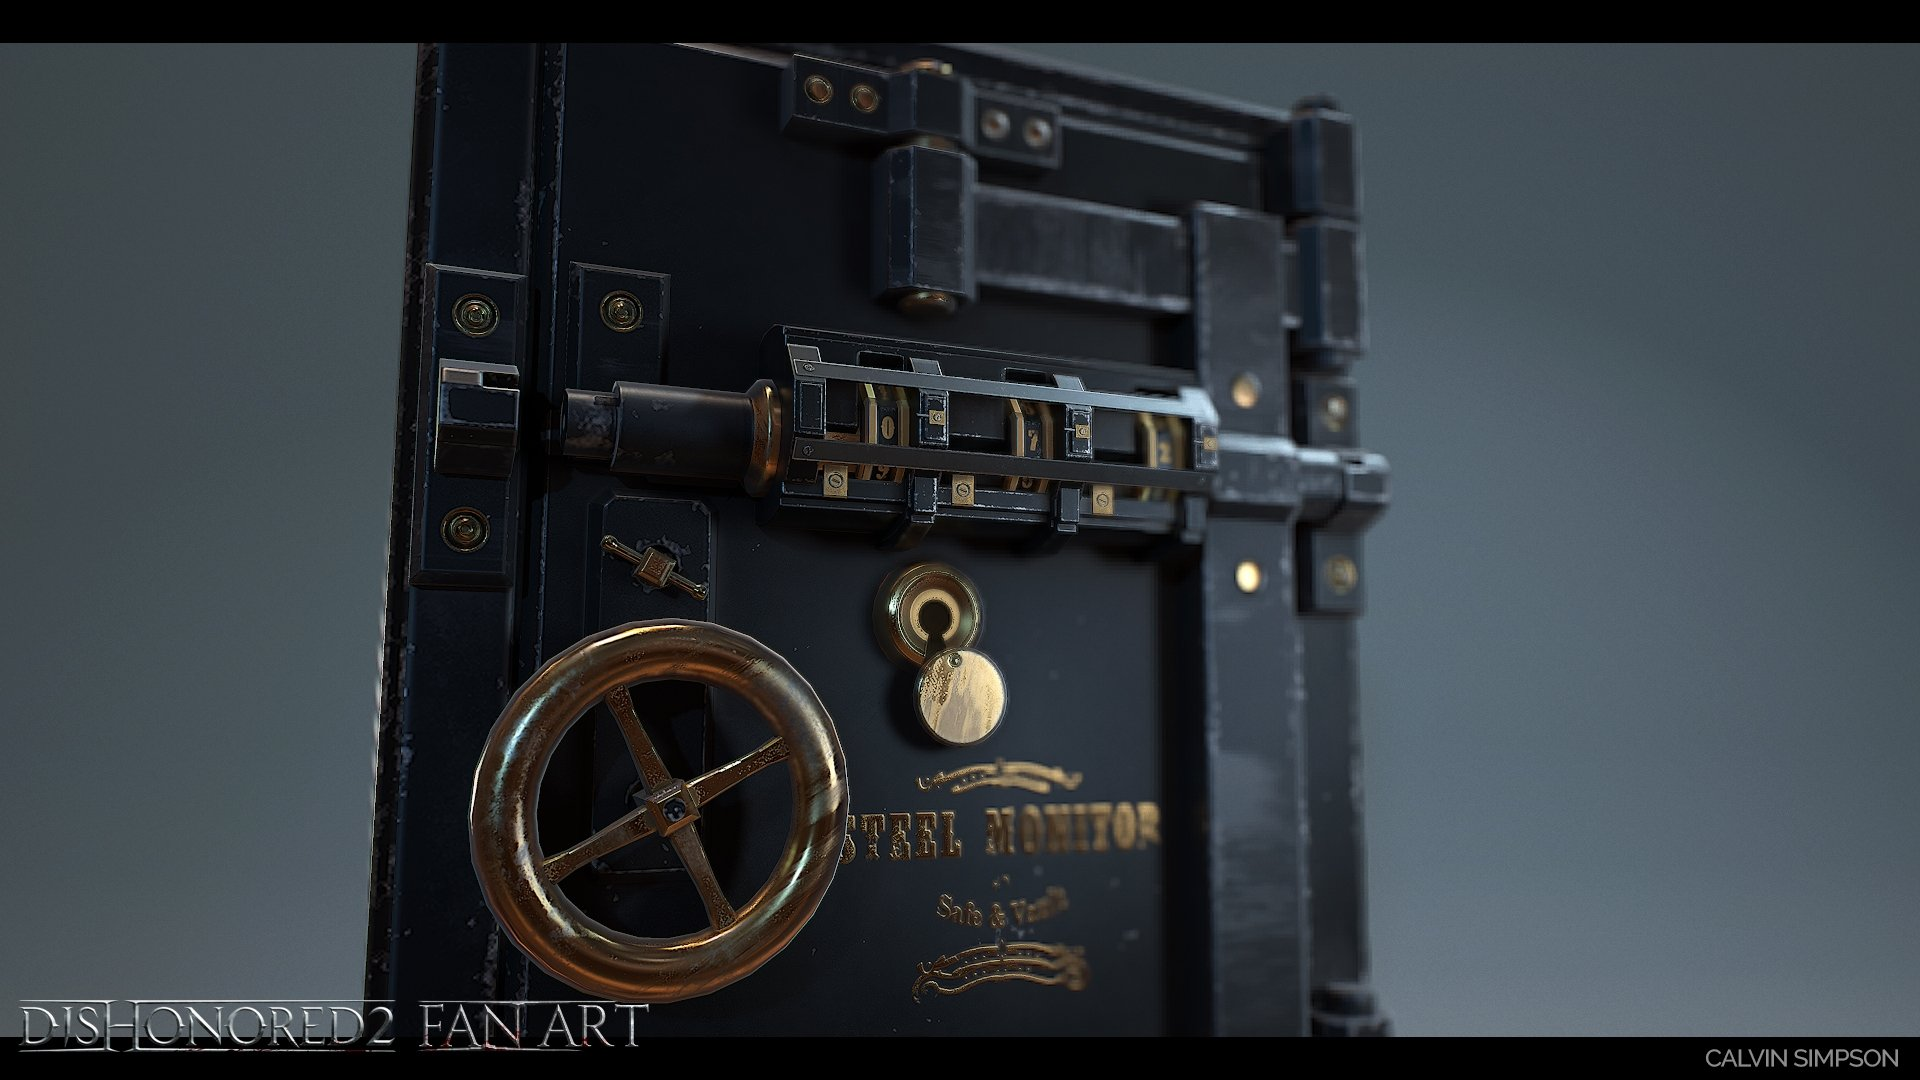 dishonored 2 safe